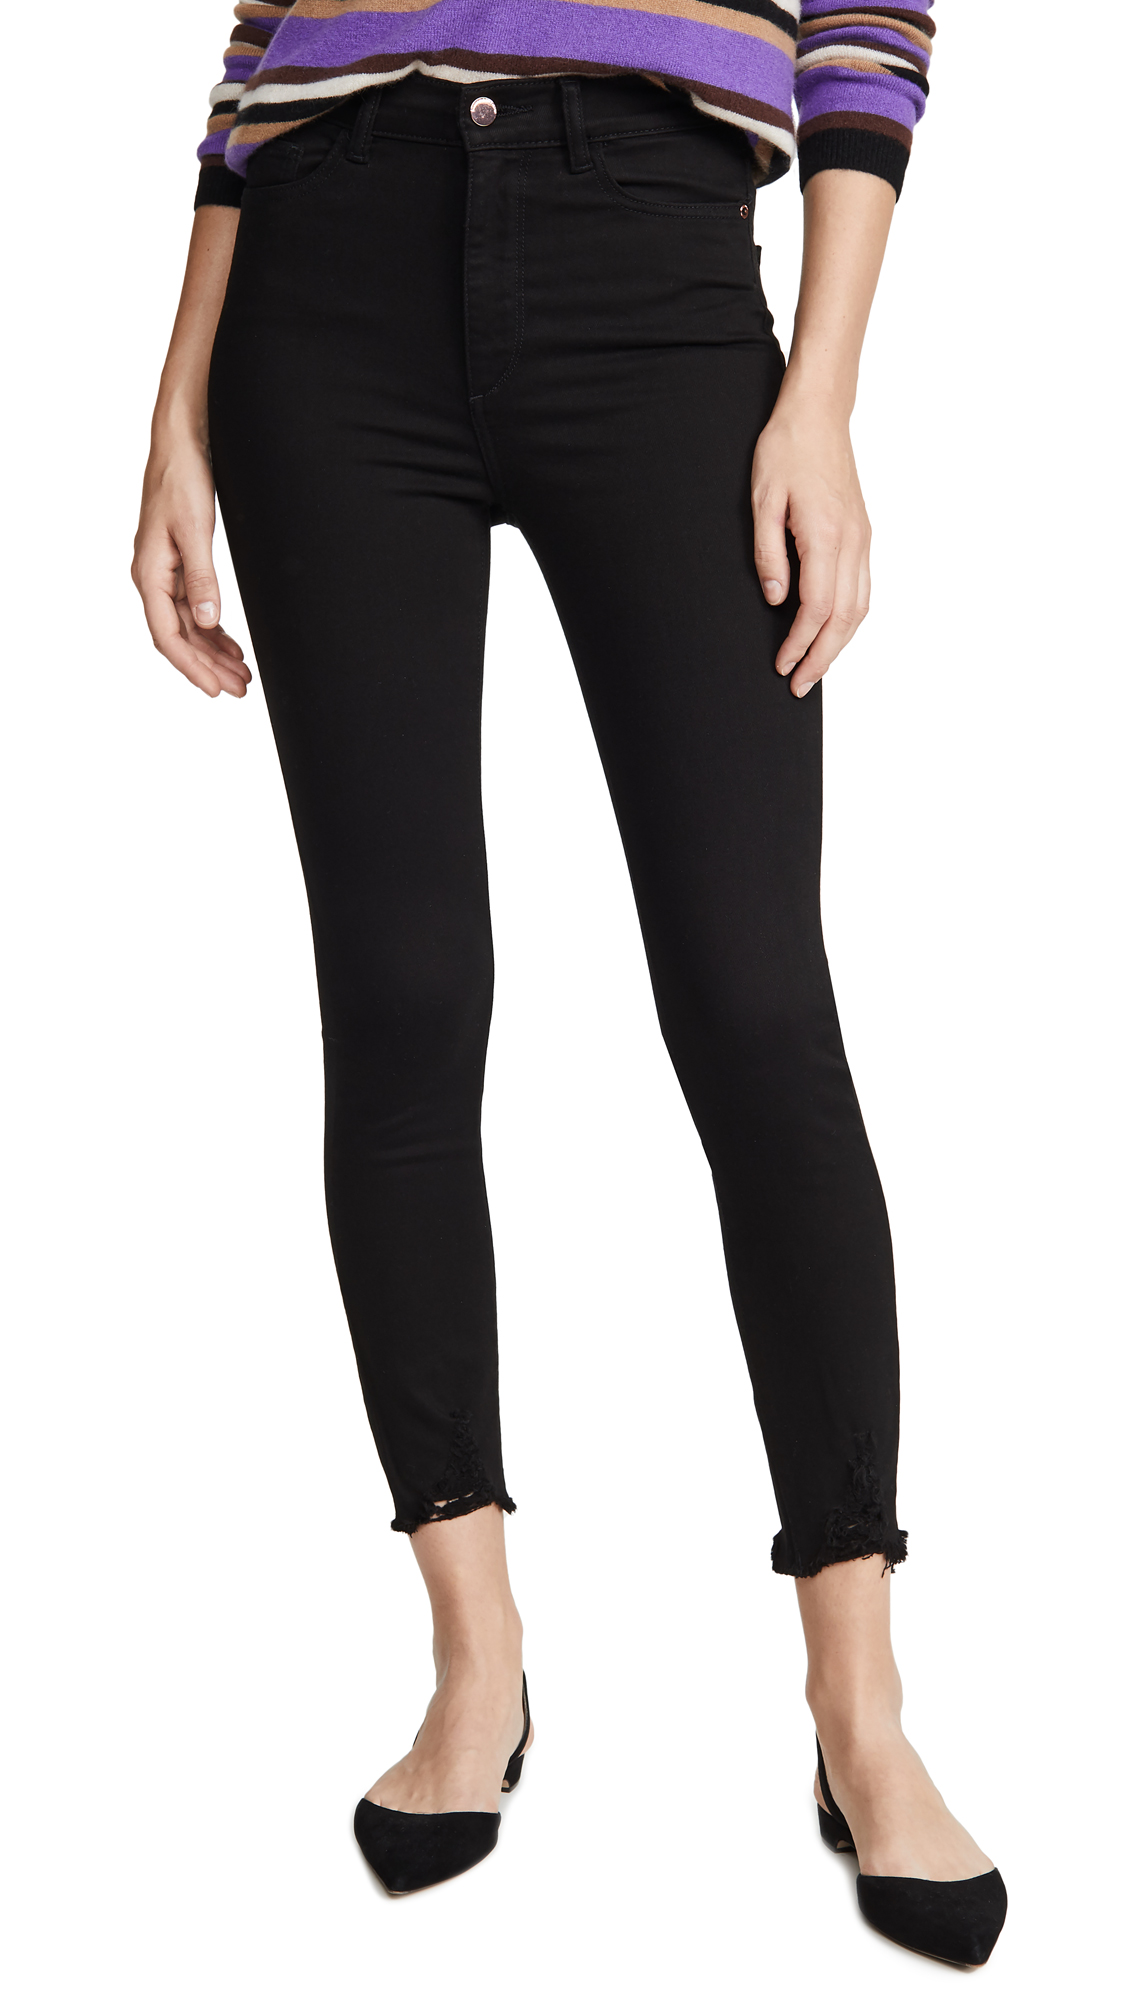 Buy DL online - photo of DL1961 x Marianna Hewitt Farrow Crop High Rise Skinny Jeans